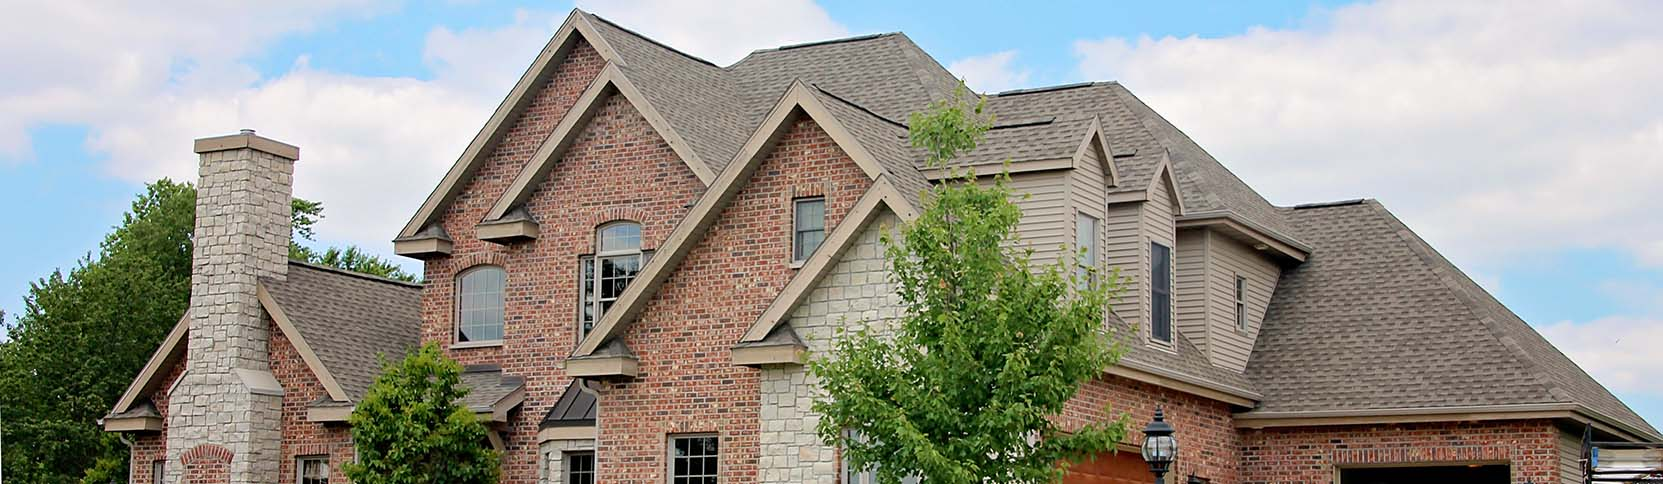 Residential roofing from Hustad Companies of Cottage Grove wi